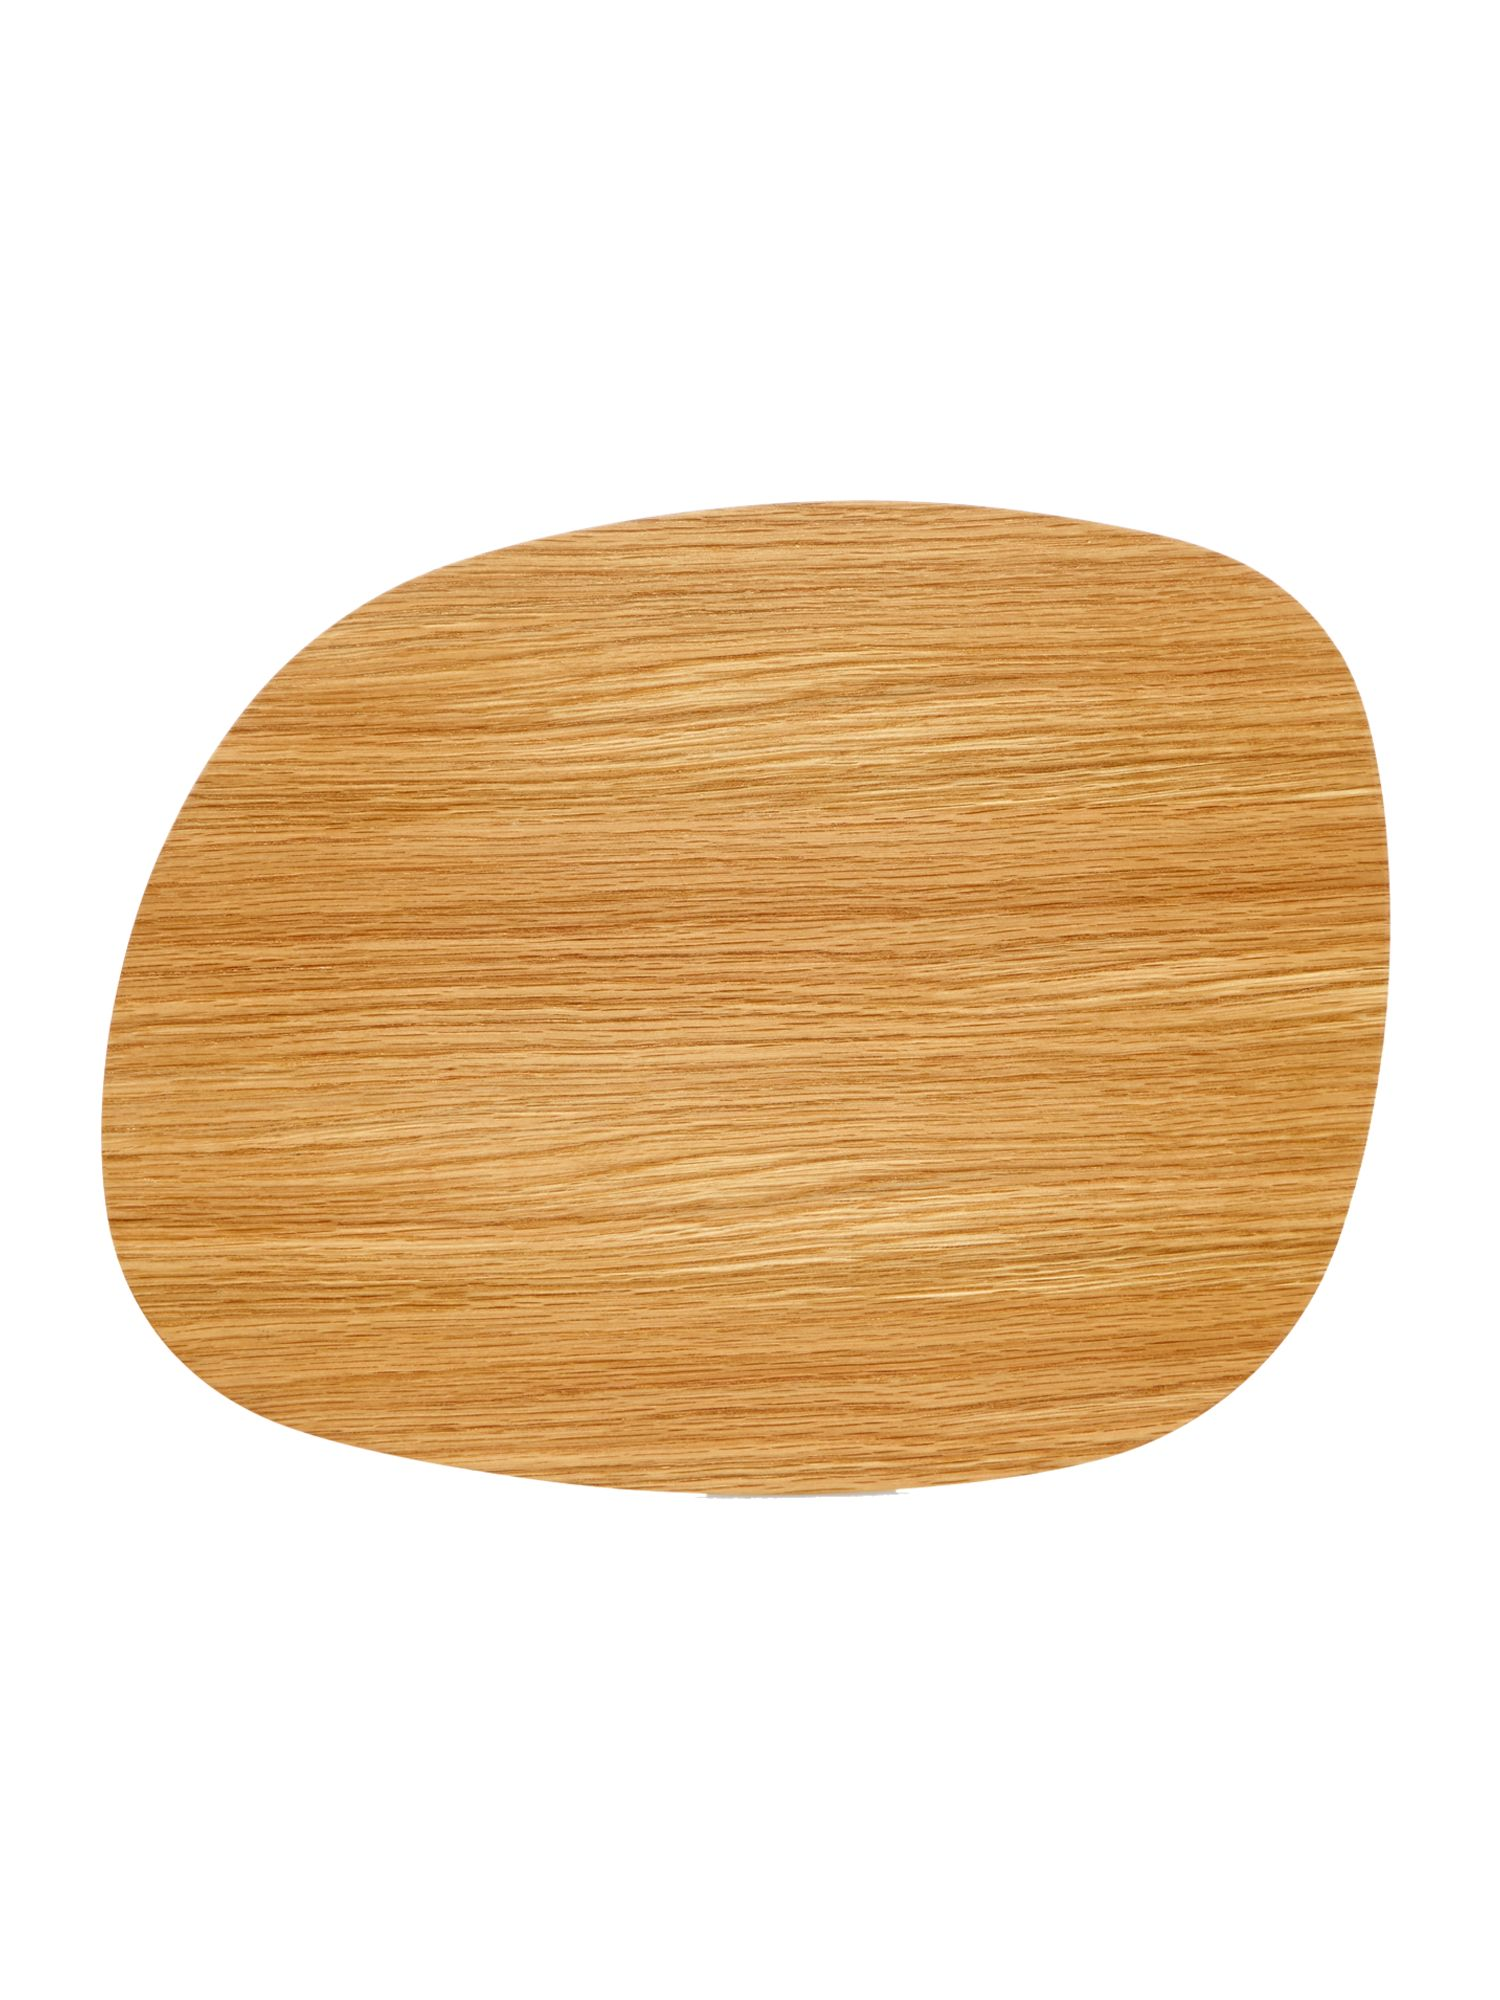 Linea Organic oak placemats set of 2